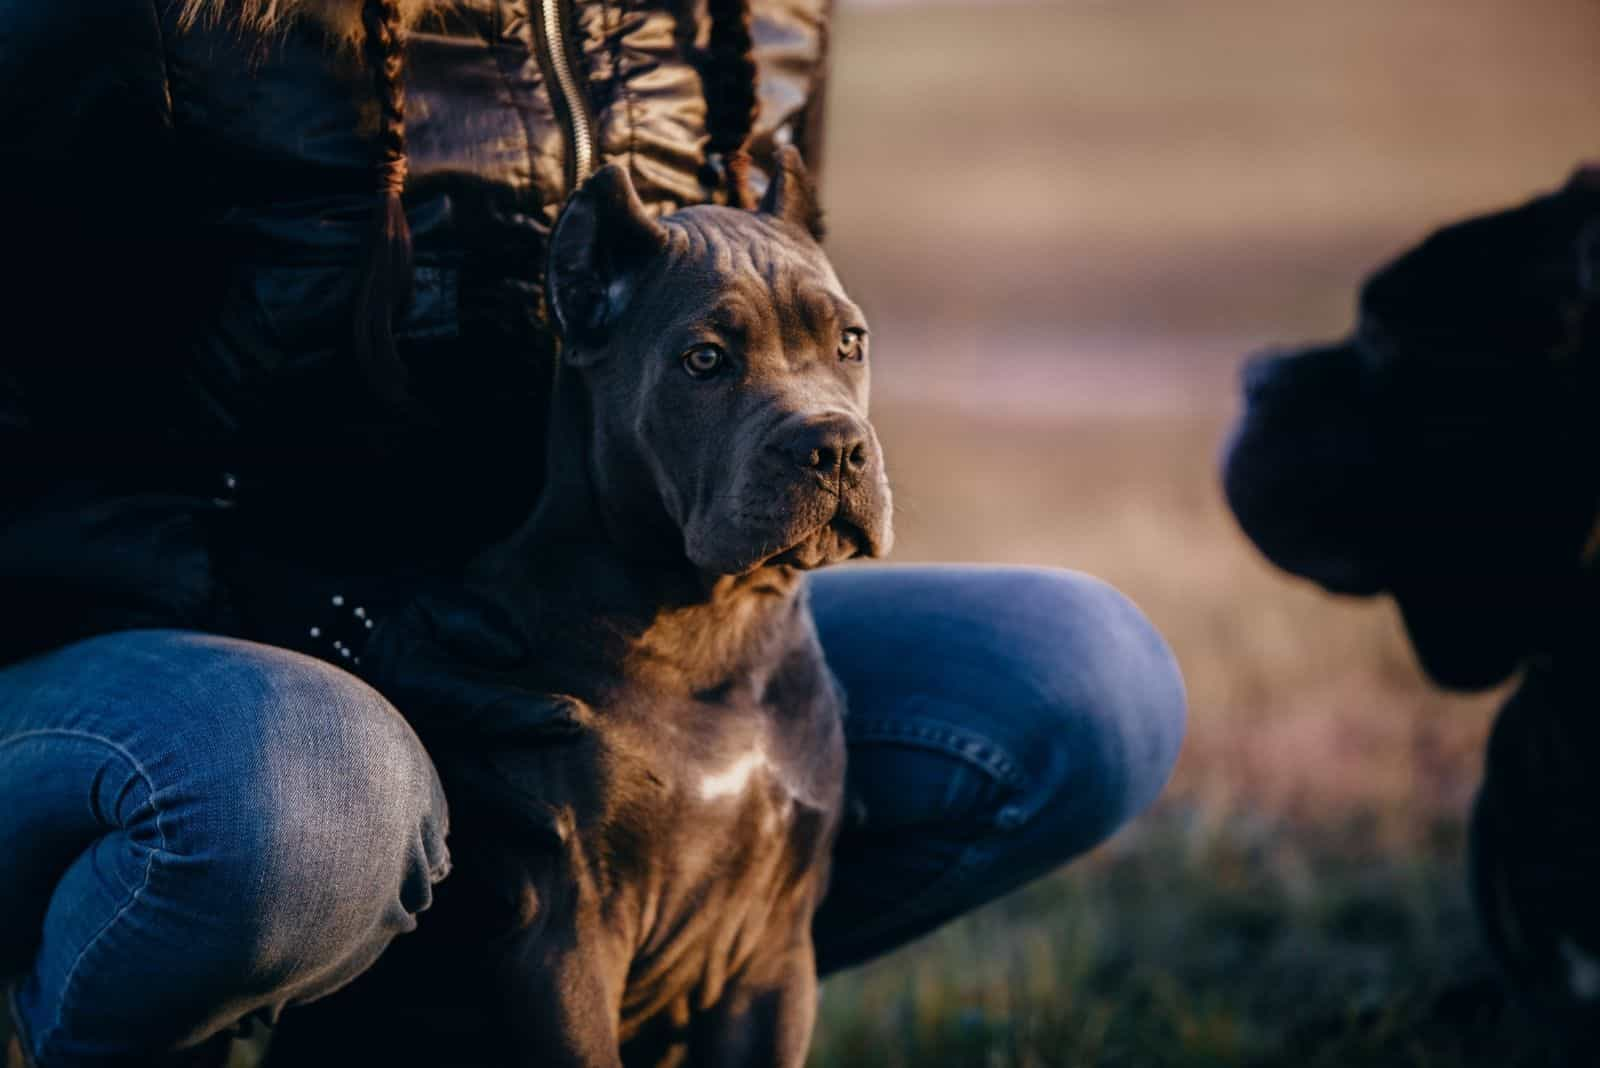 sweet italian cane corso looking at other dog standing near a man